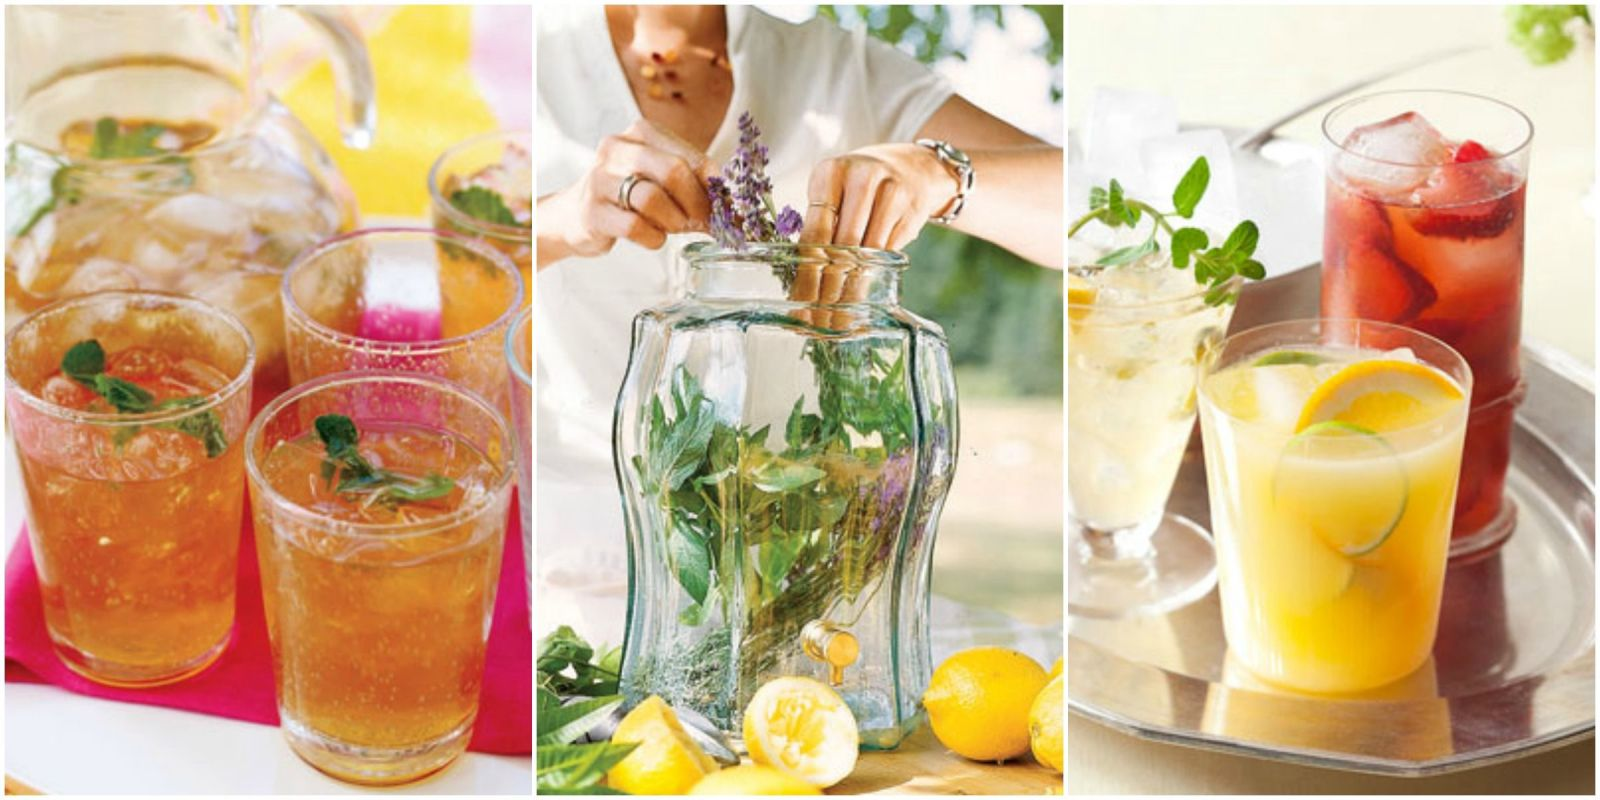 Iced Tea: 50 Recipes for Refreshing Tisanes, Infus